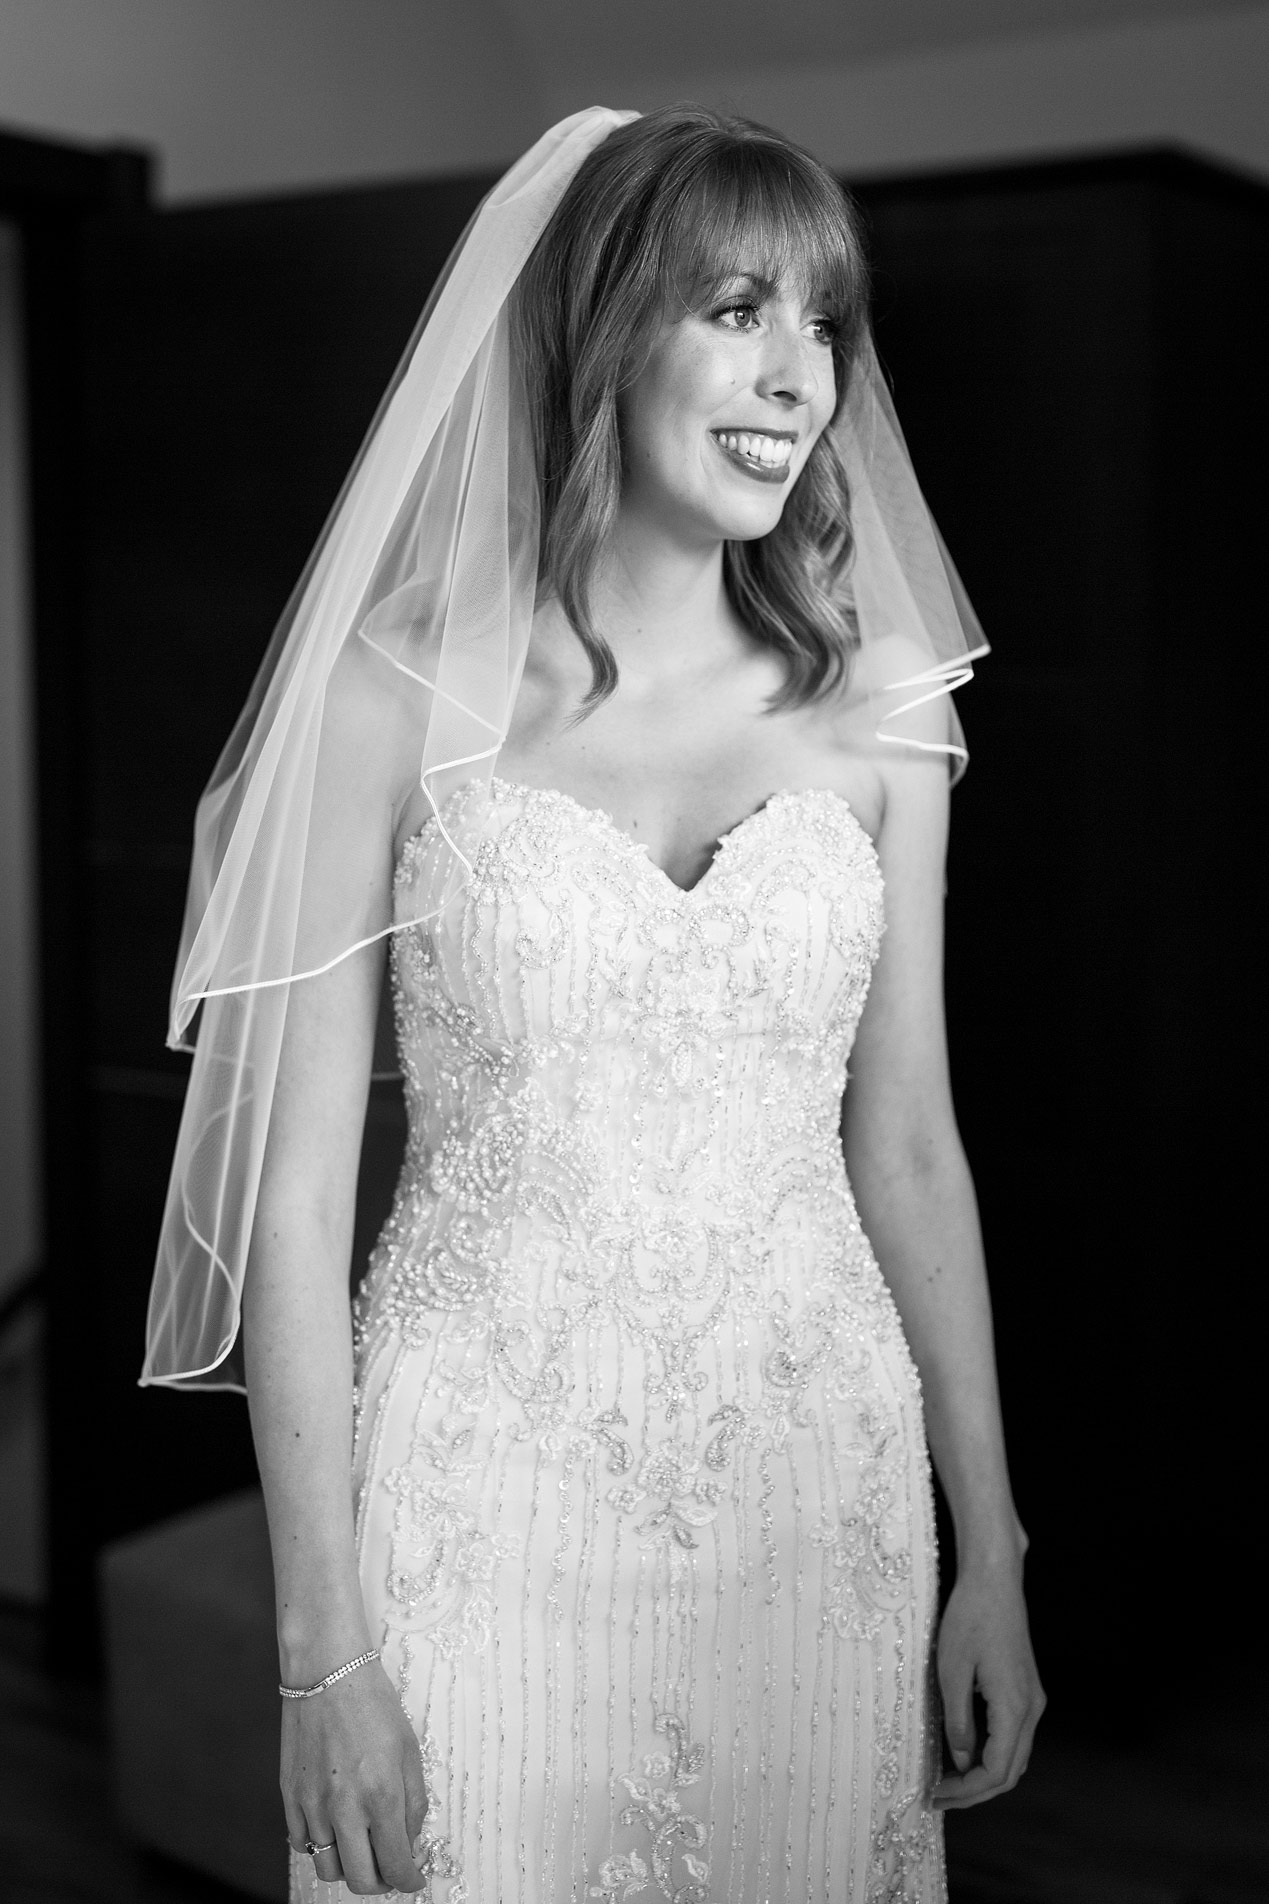 A bride has her make up done at her Northbrook Park wedding - London wedding photographer